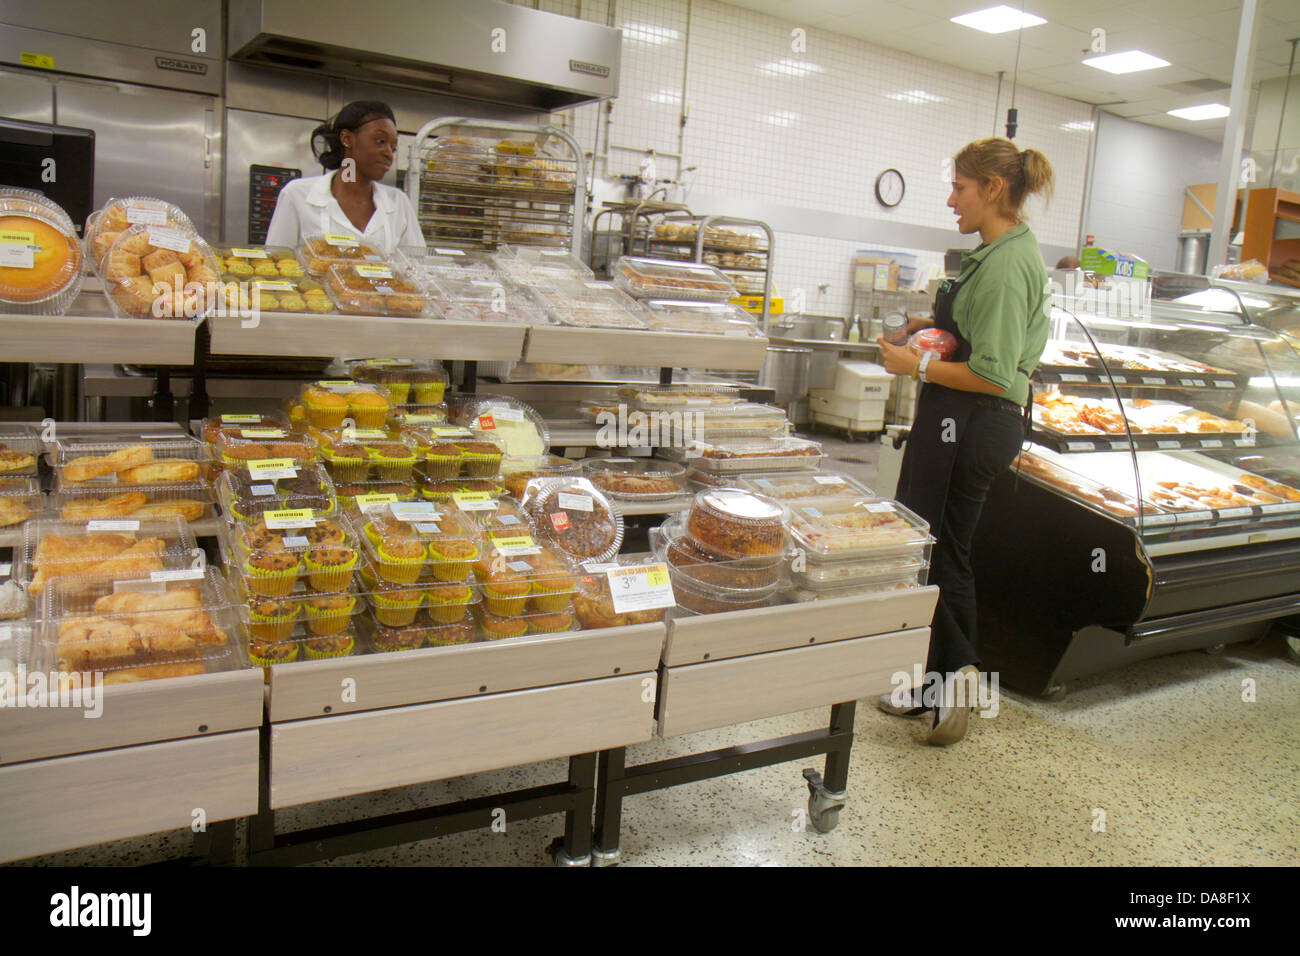 publix stock photos u0026 publix stock images alamy